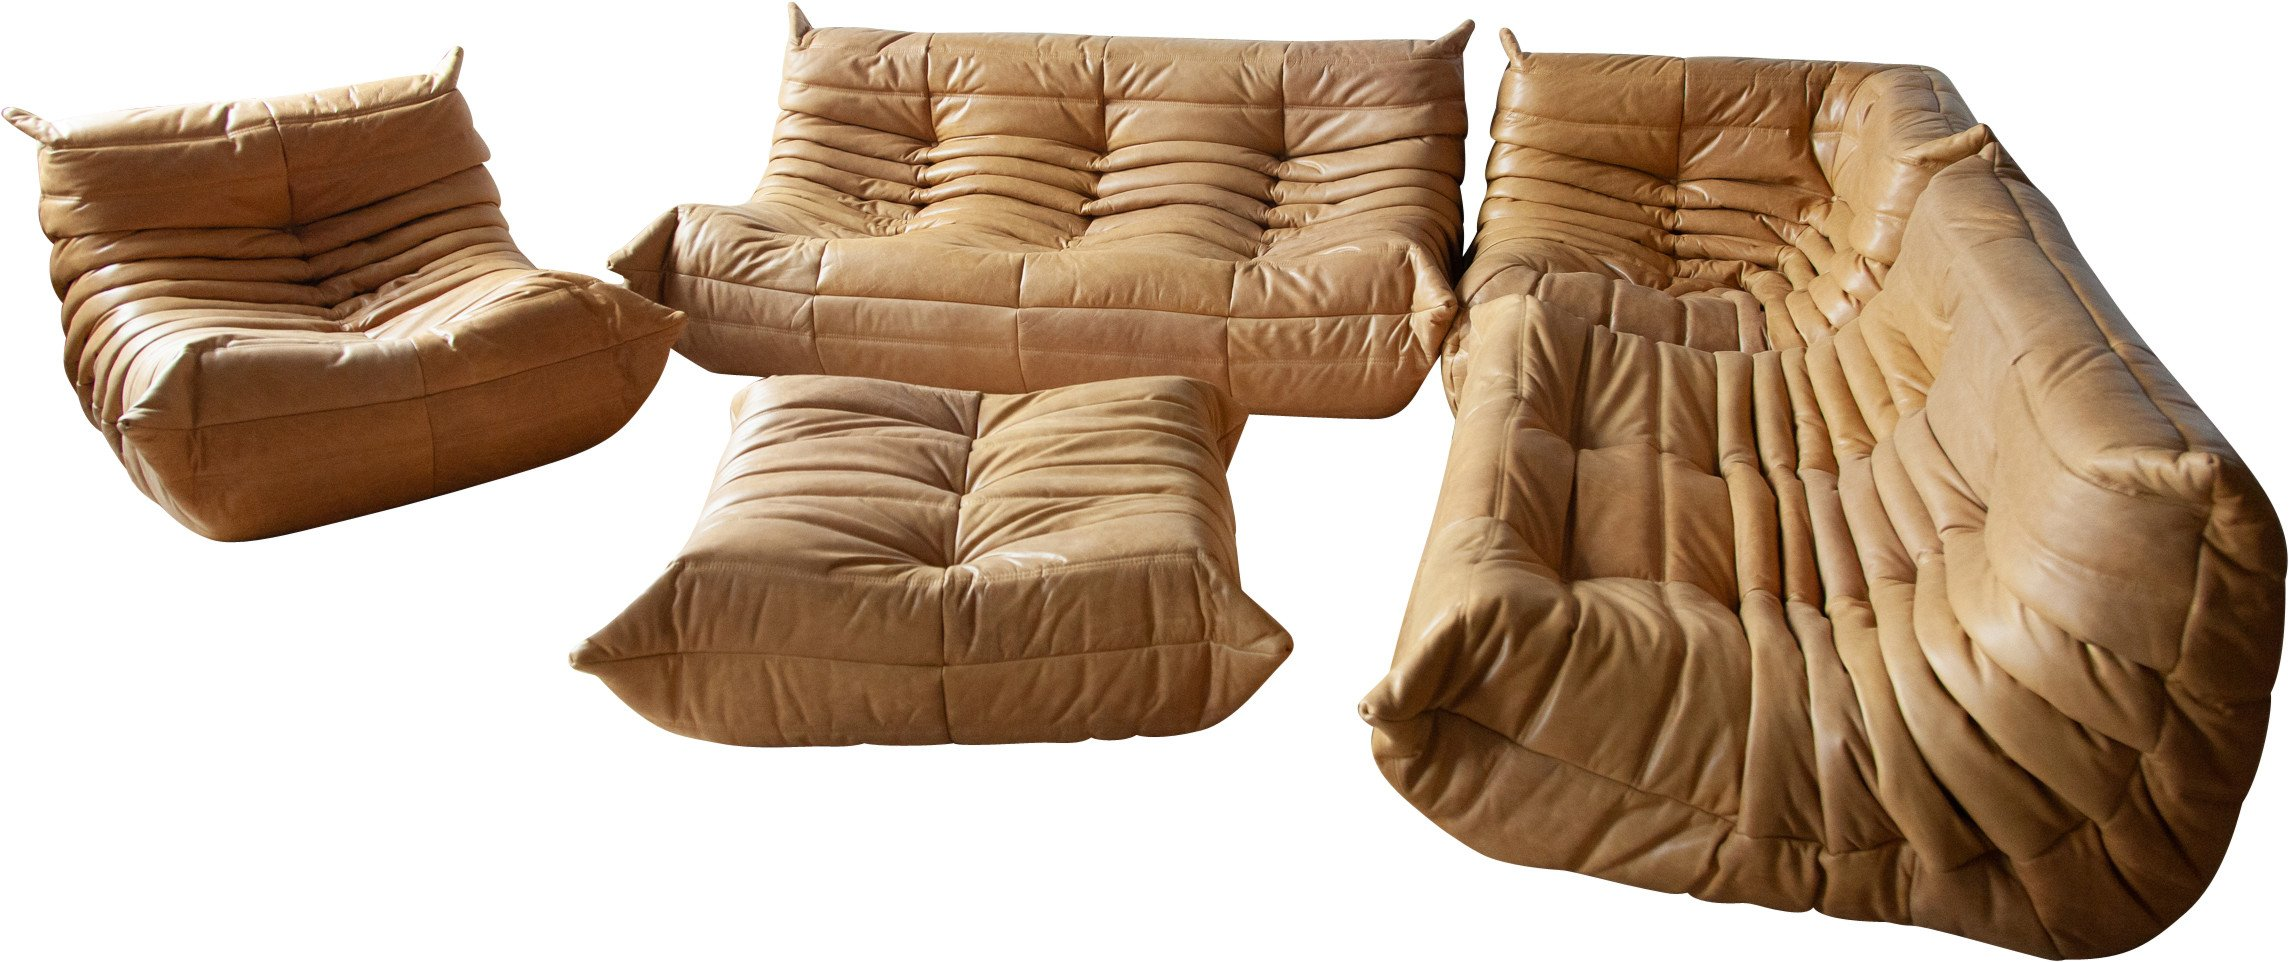 Togo five piece Set in Camel Leather by M. Ducaroy for Ligne Roset, France, 1970s